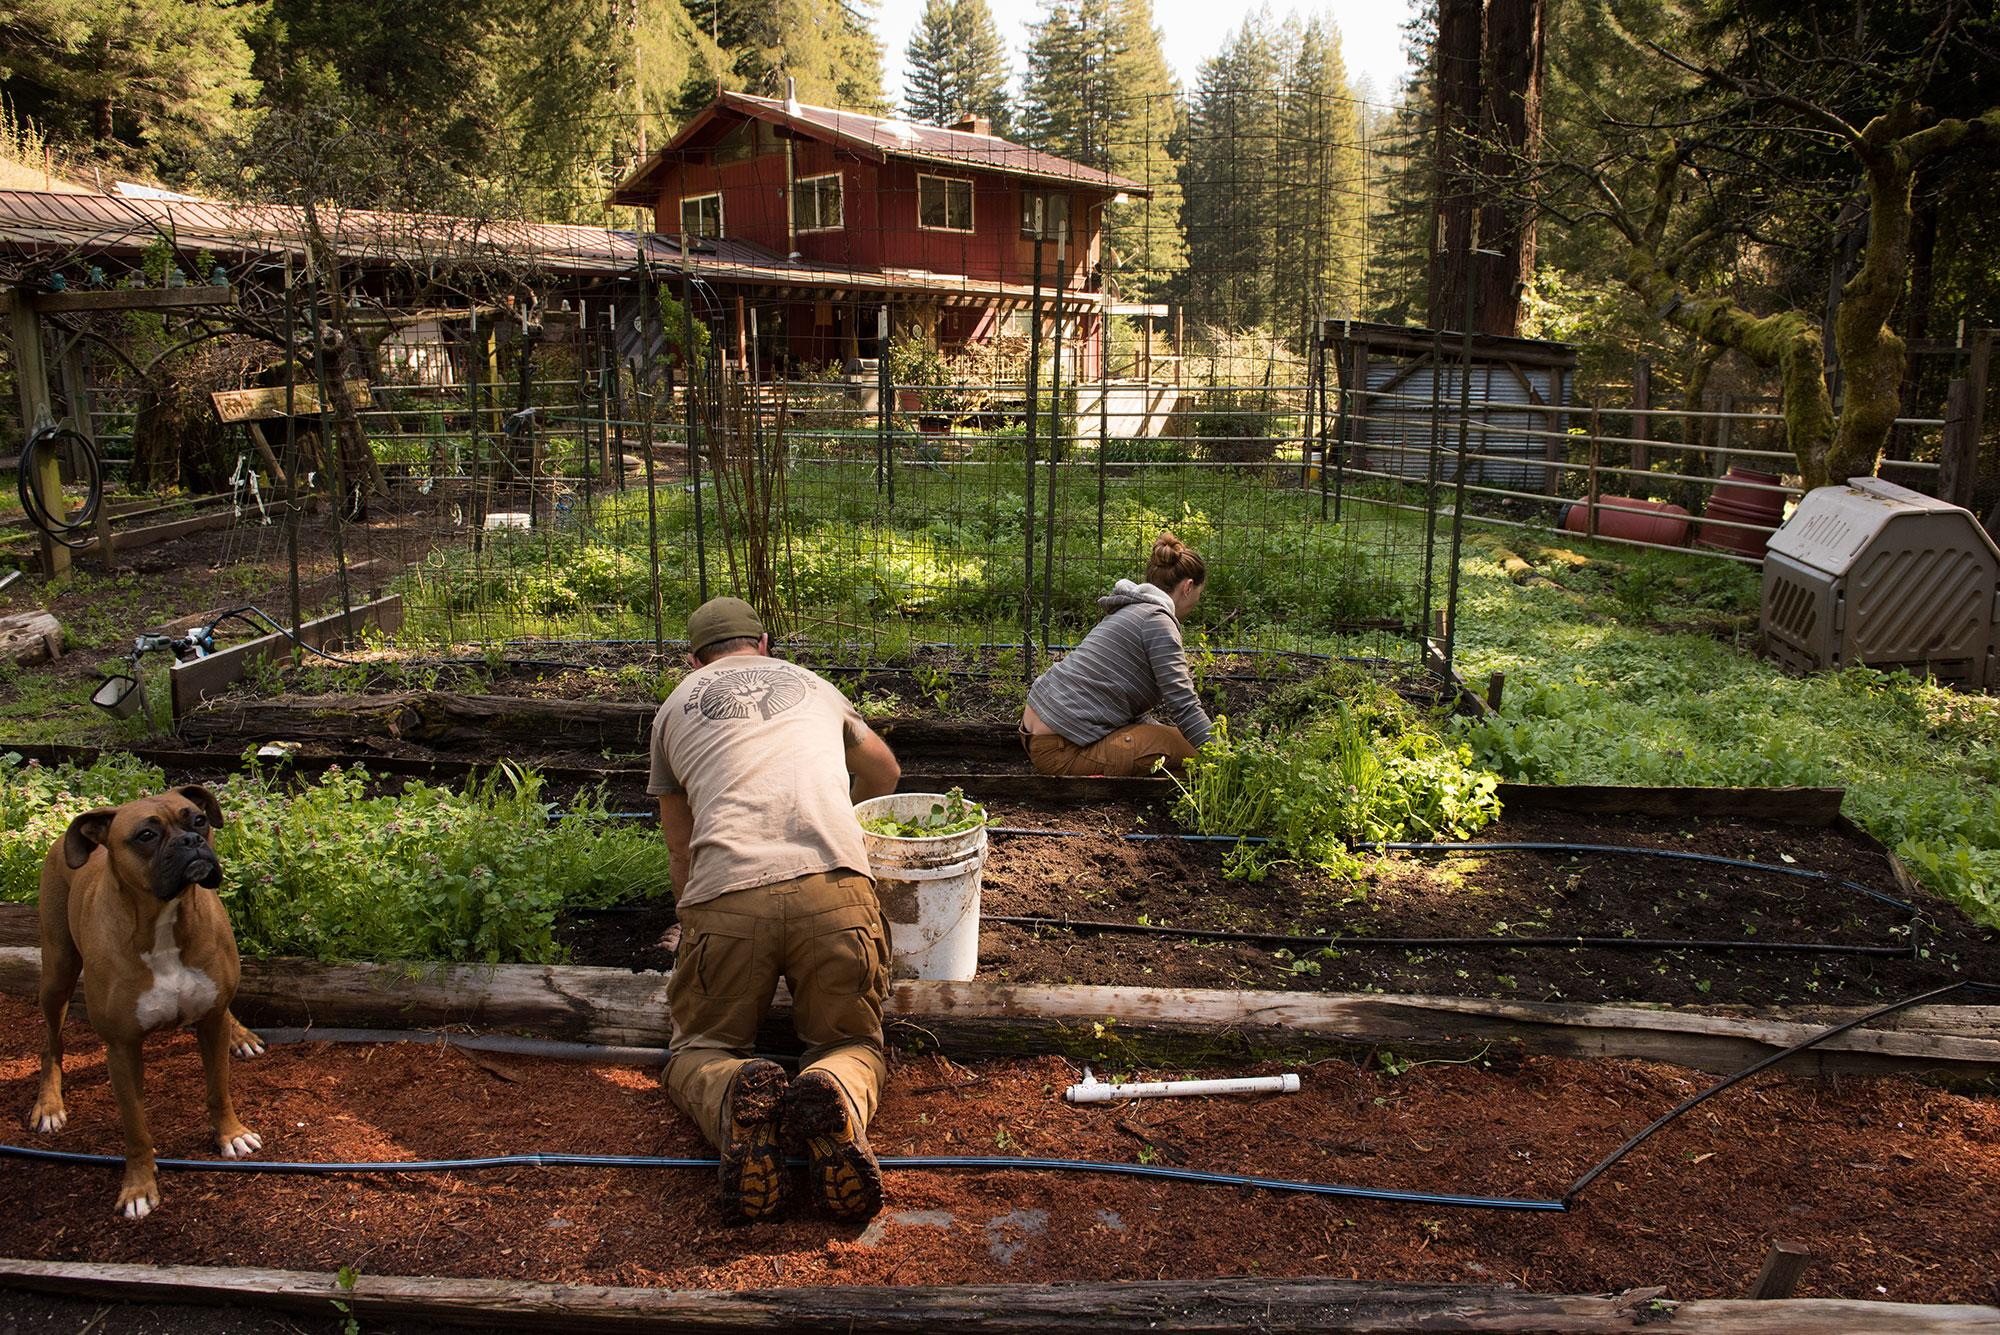 <p>The couple's Boxer, Zara, keeps them company as they weed the vegetable garden beds for the first time after winter this March. (Photo: Deleigh Hermes for Yahoo News) </p>